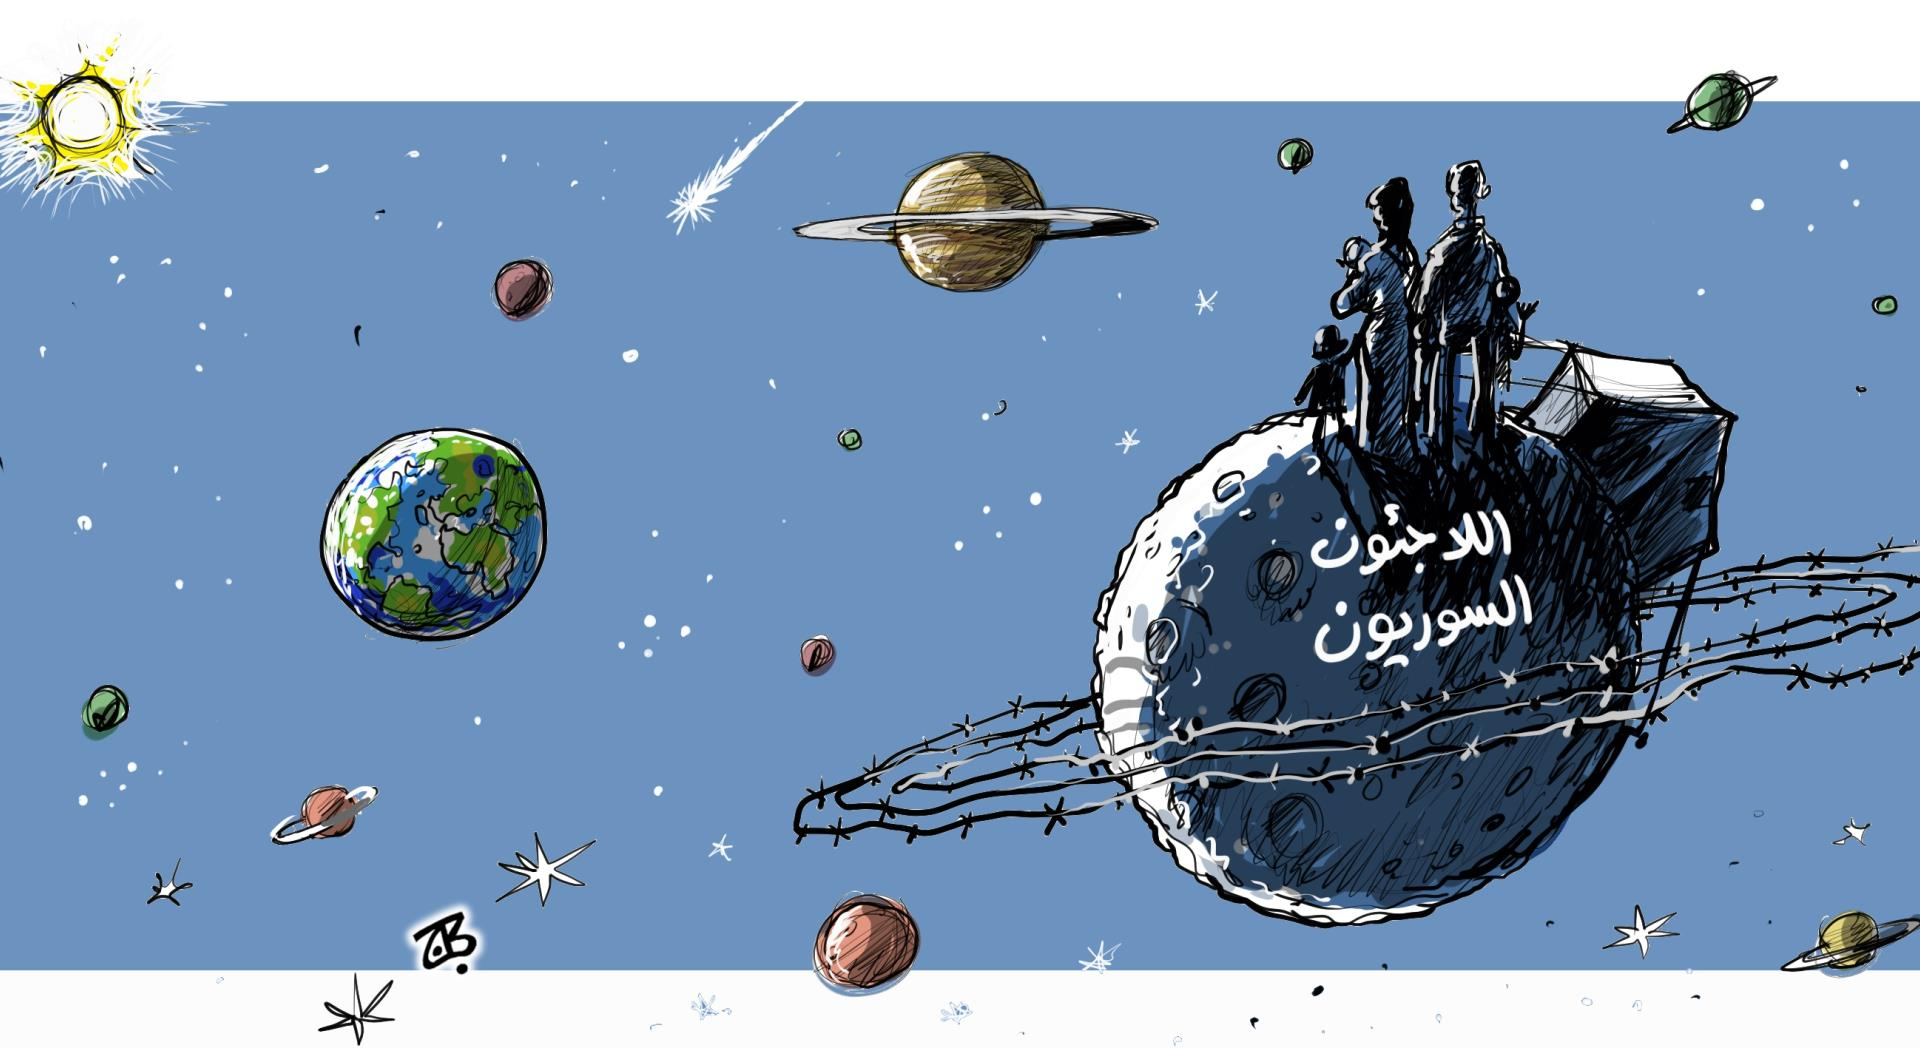 Refugees planet